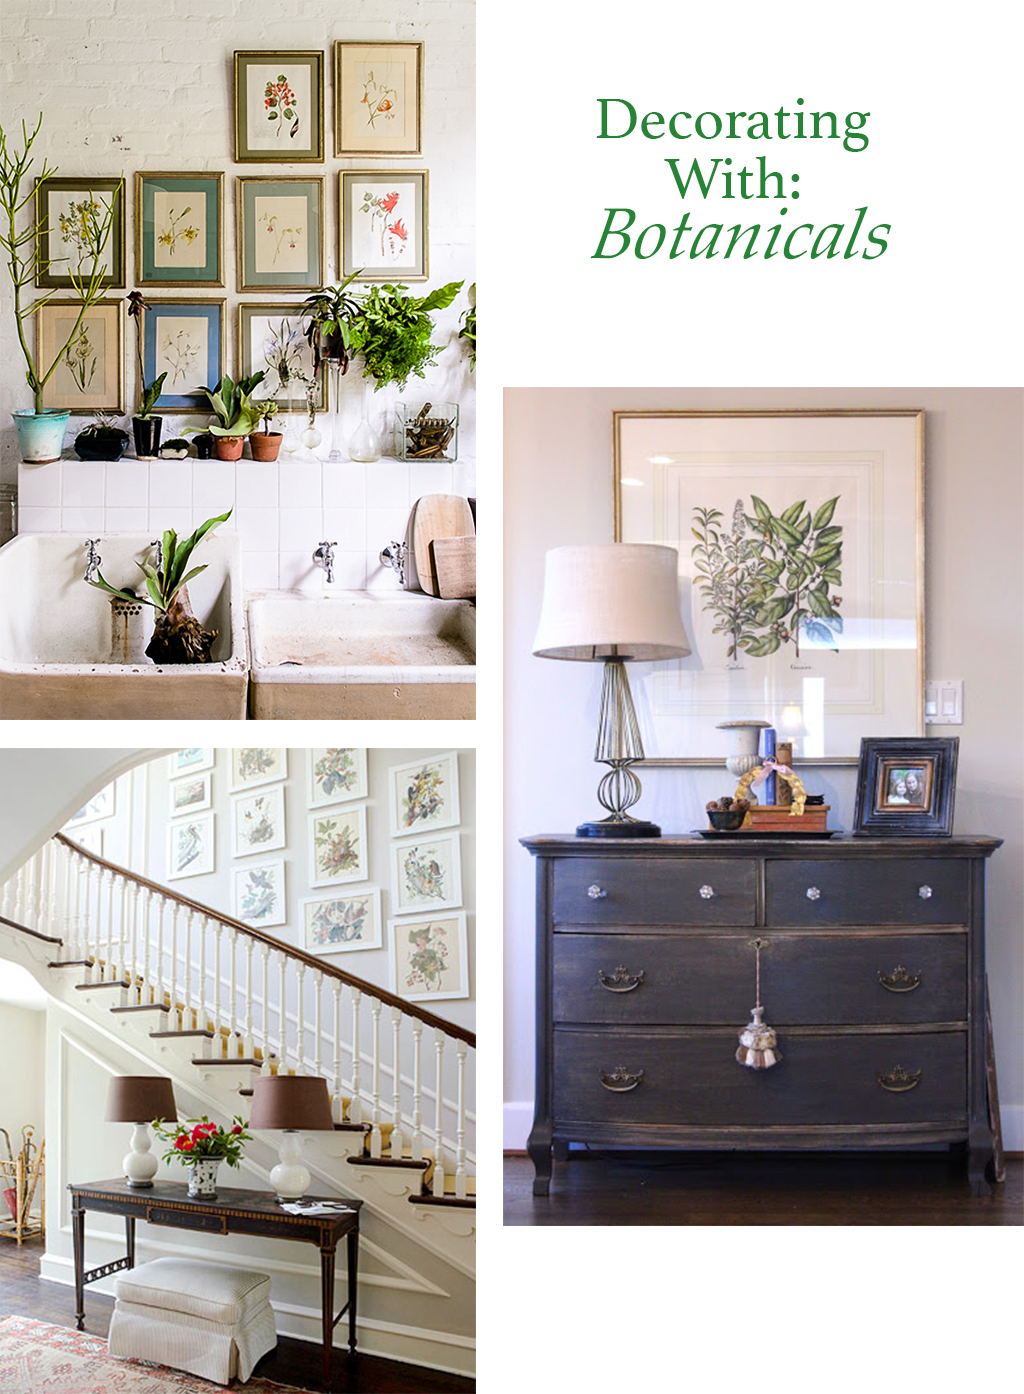 Decorating with Botanicals